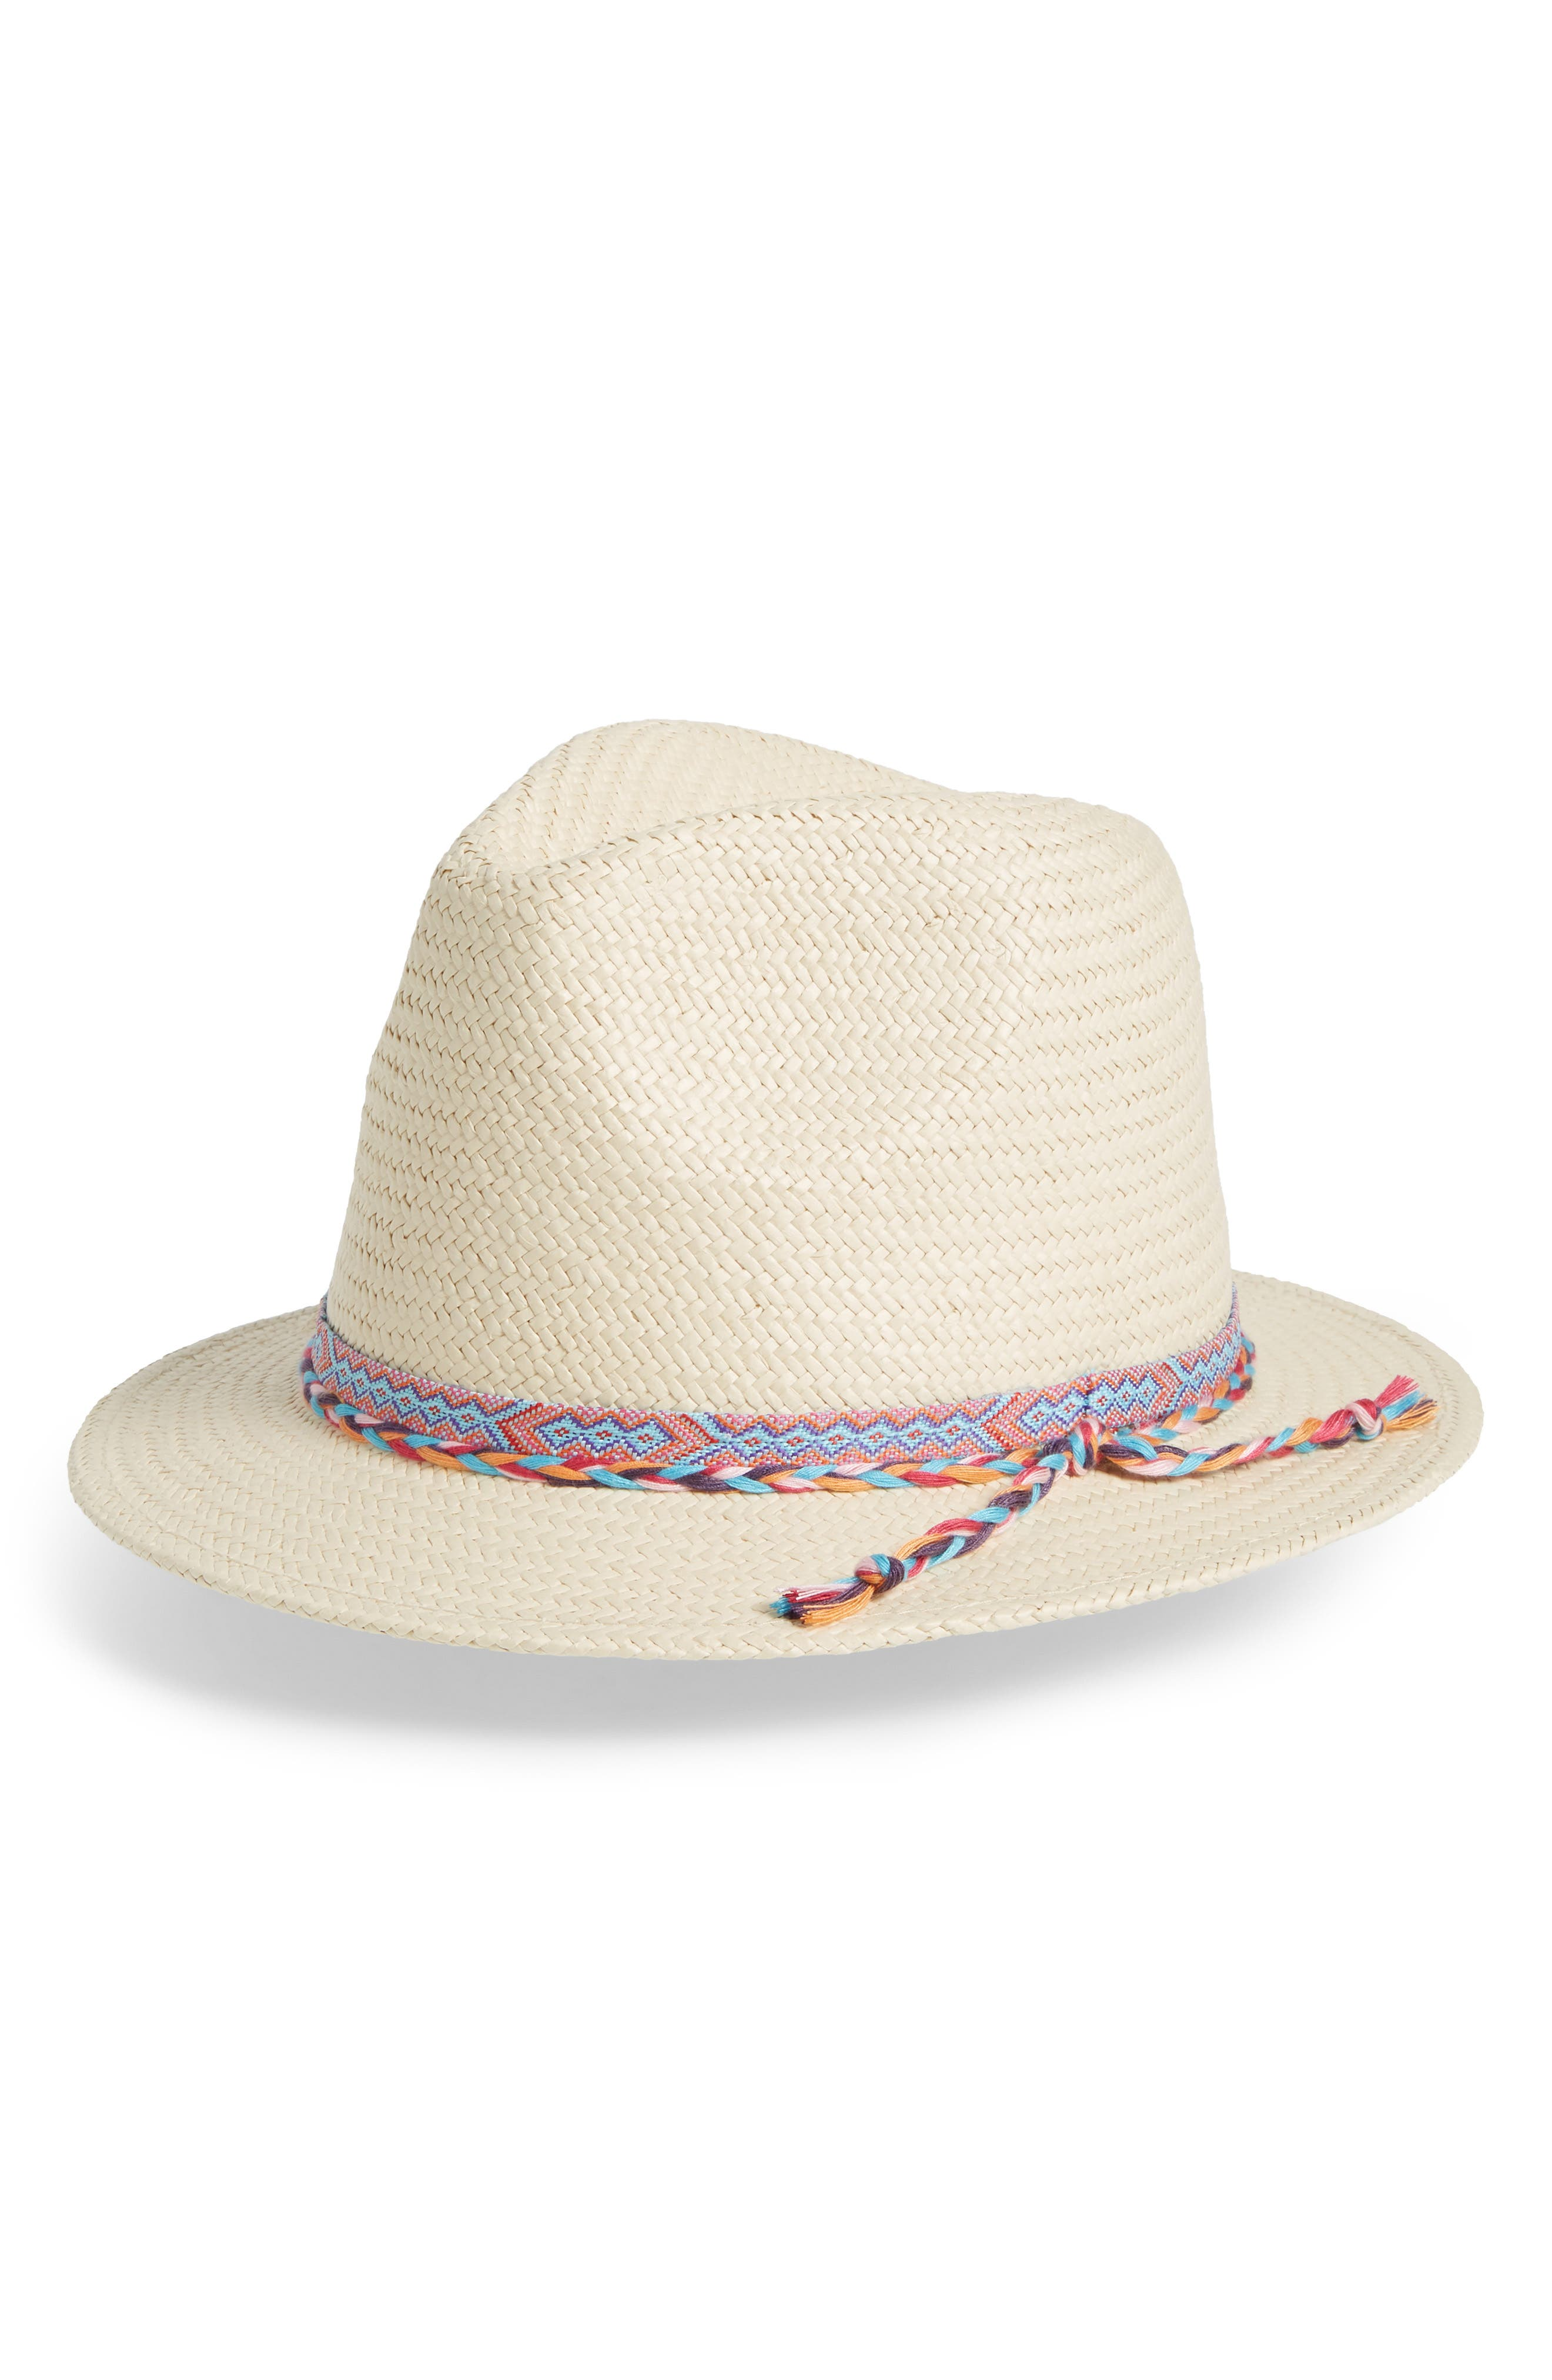 Braided Trim Panama Hat,                             Main thumbnail 1, color,                             Natural Combo